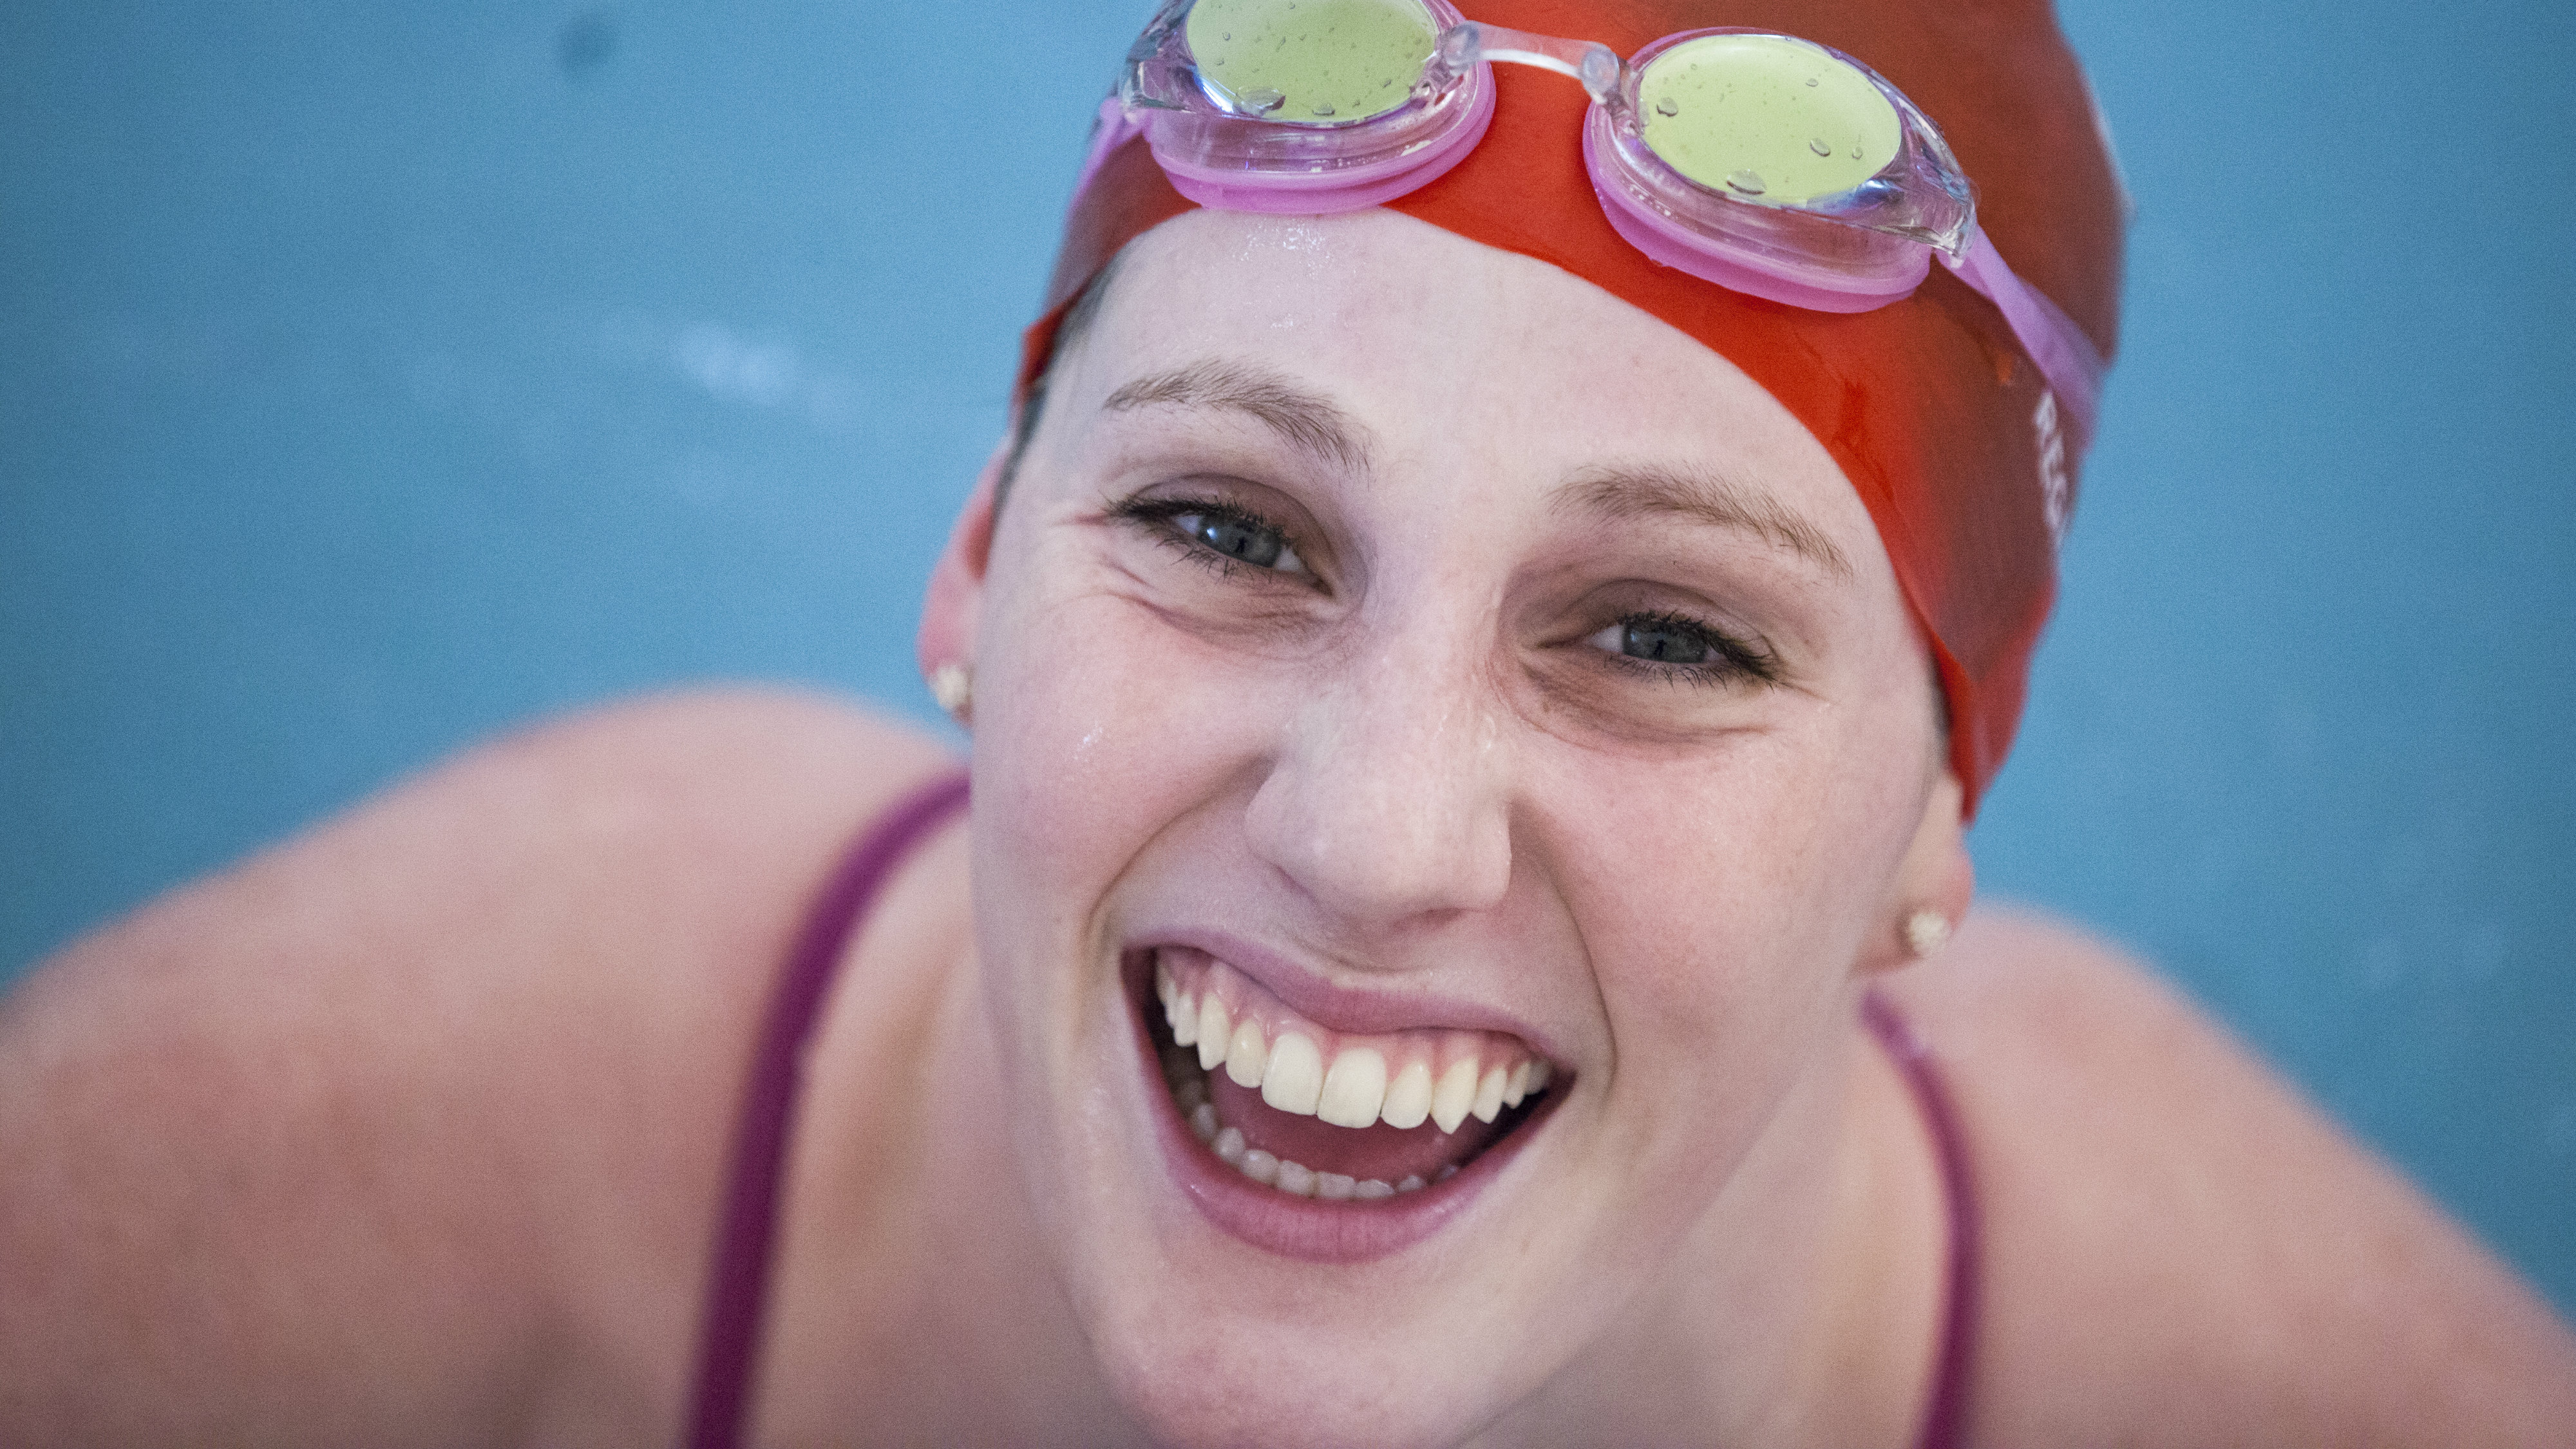 Photo: Swimmer Missy Franklin smiles in a pool